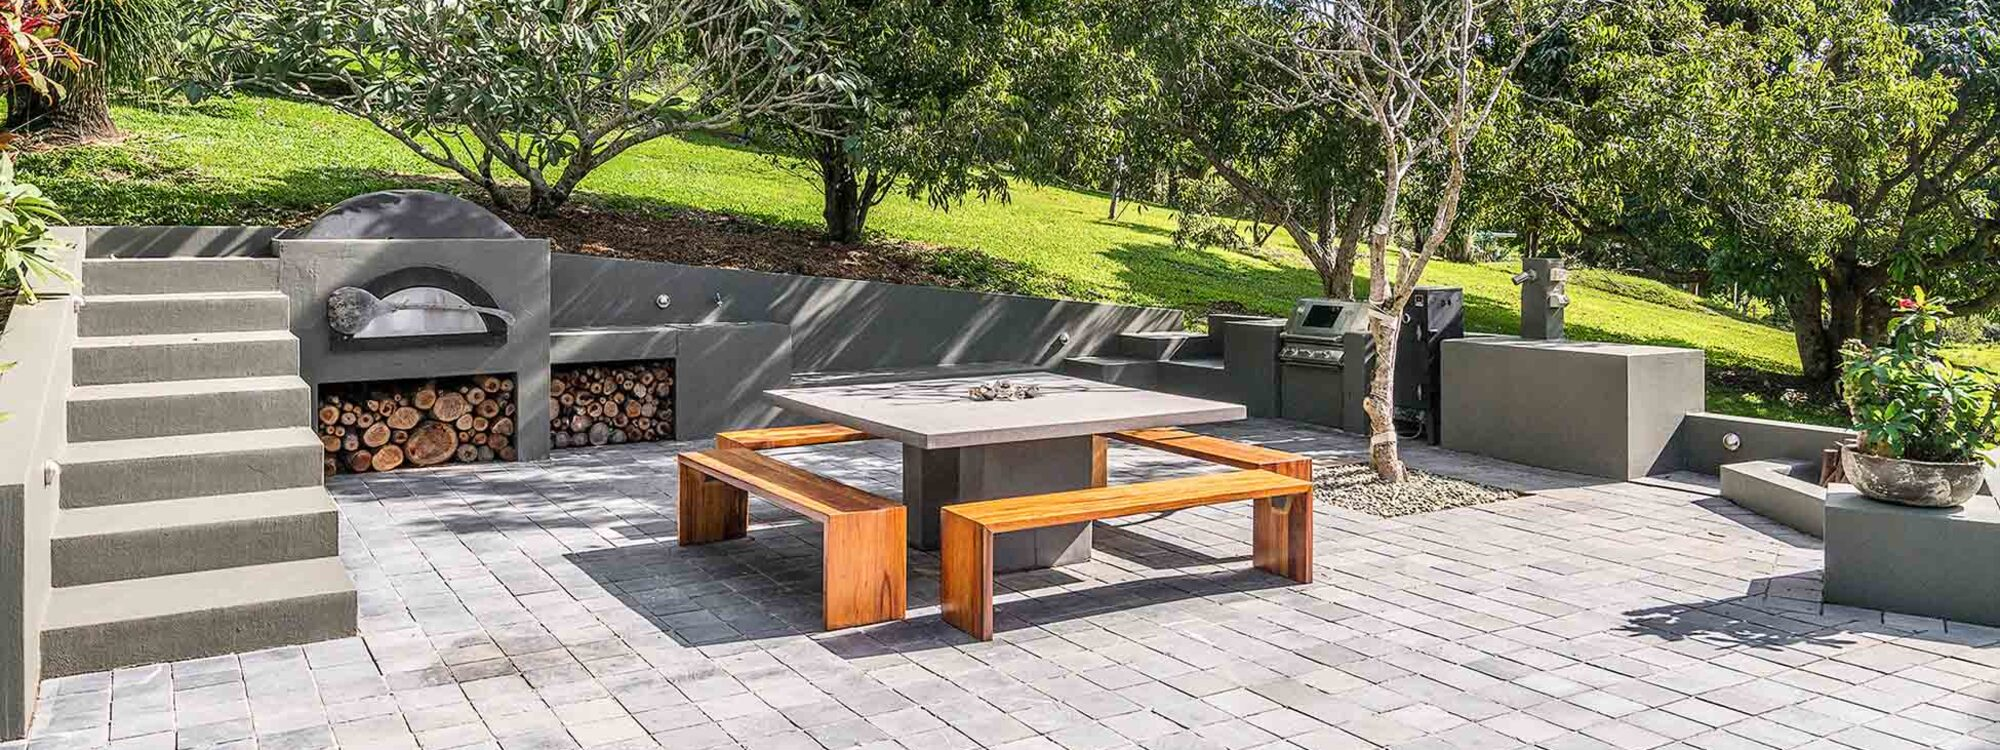 Ourmuli - Byron Bay - Outdoor Entertaining Area